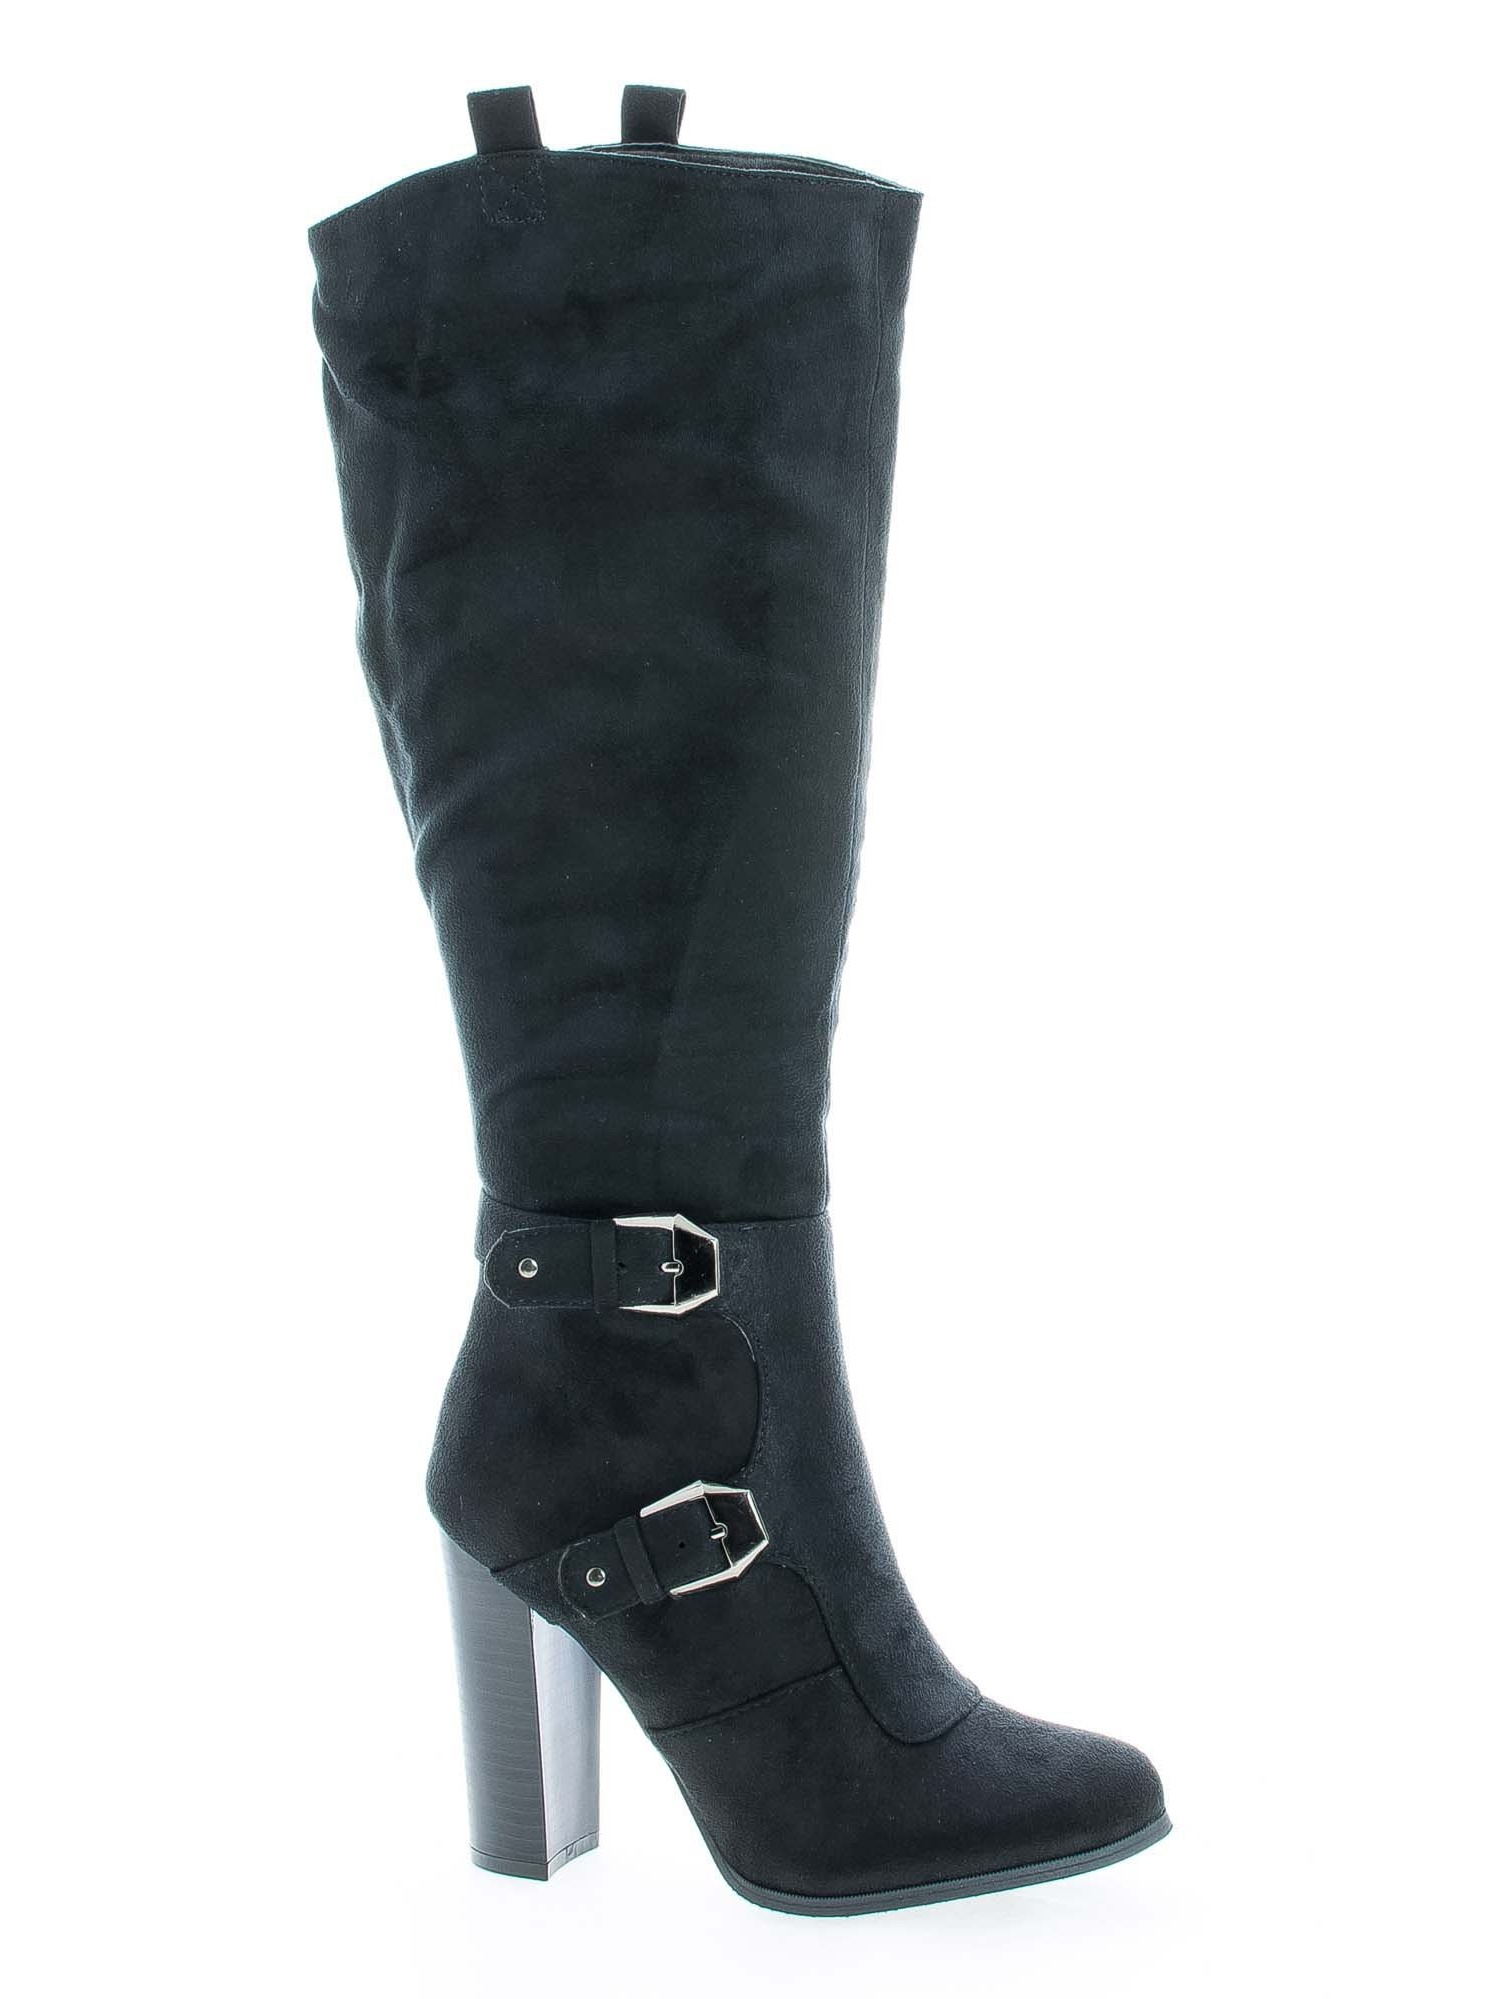 Emilia01 by Wild Diva, Almond Toe Knee High Stacked High Heel Boots